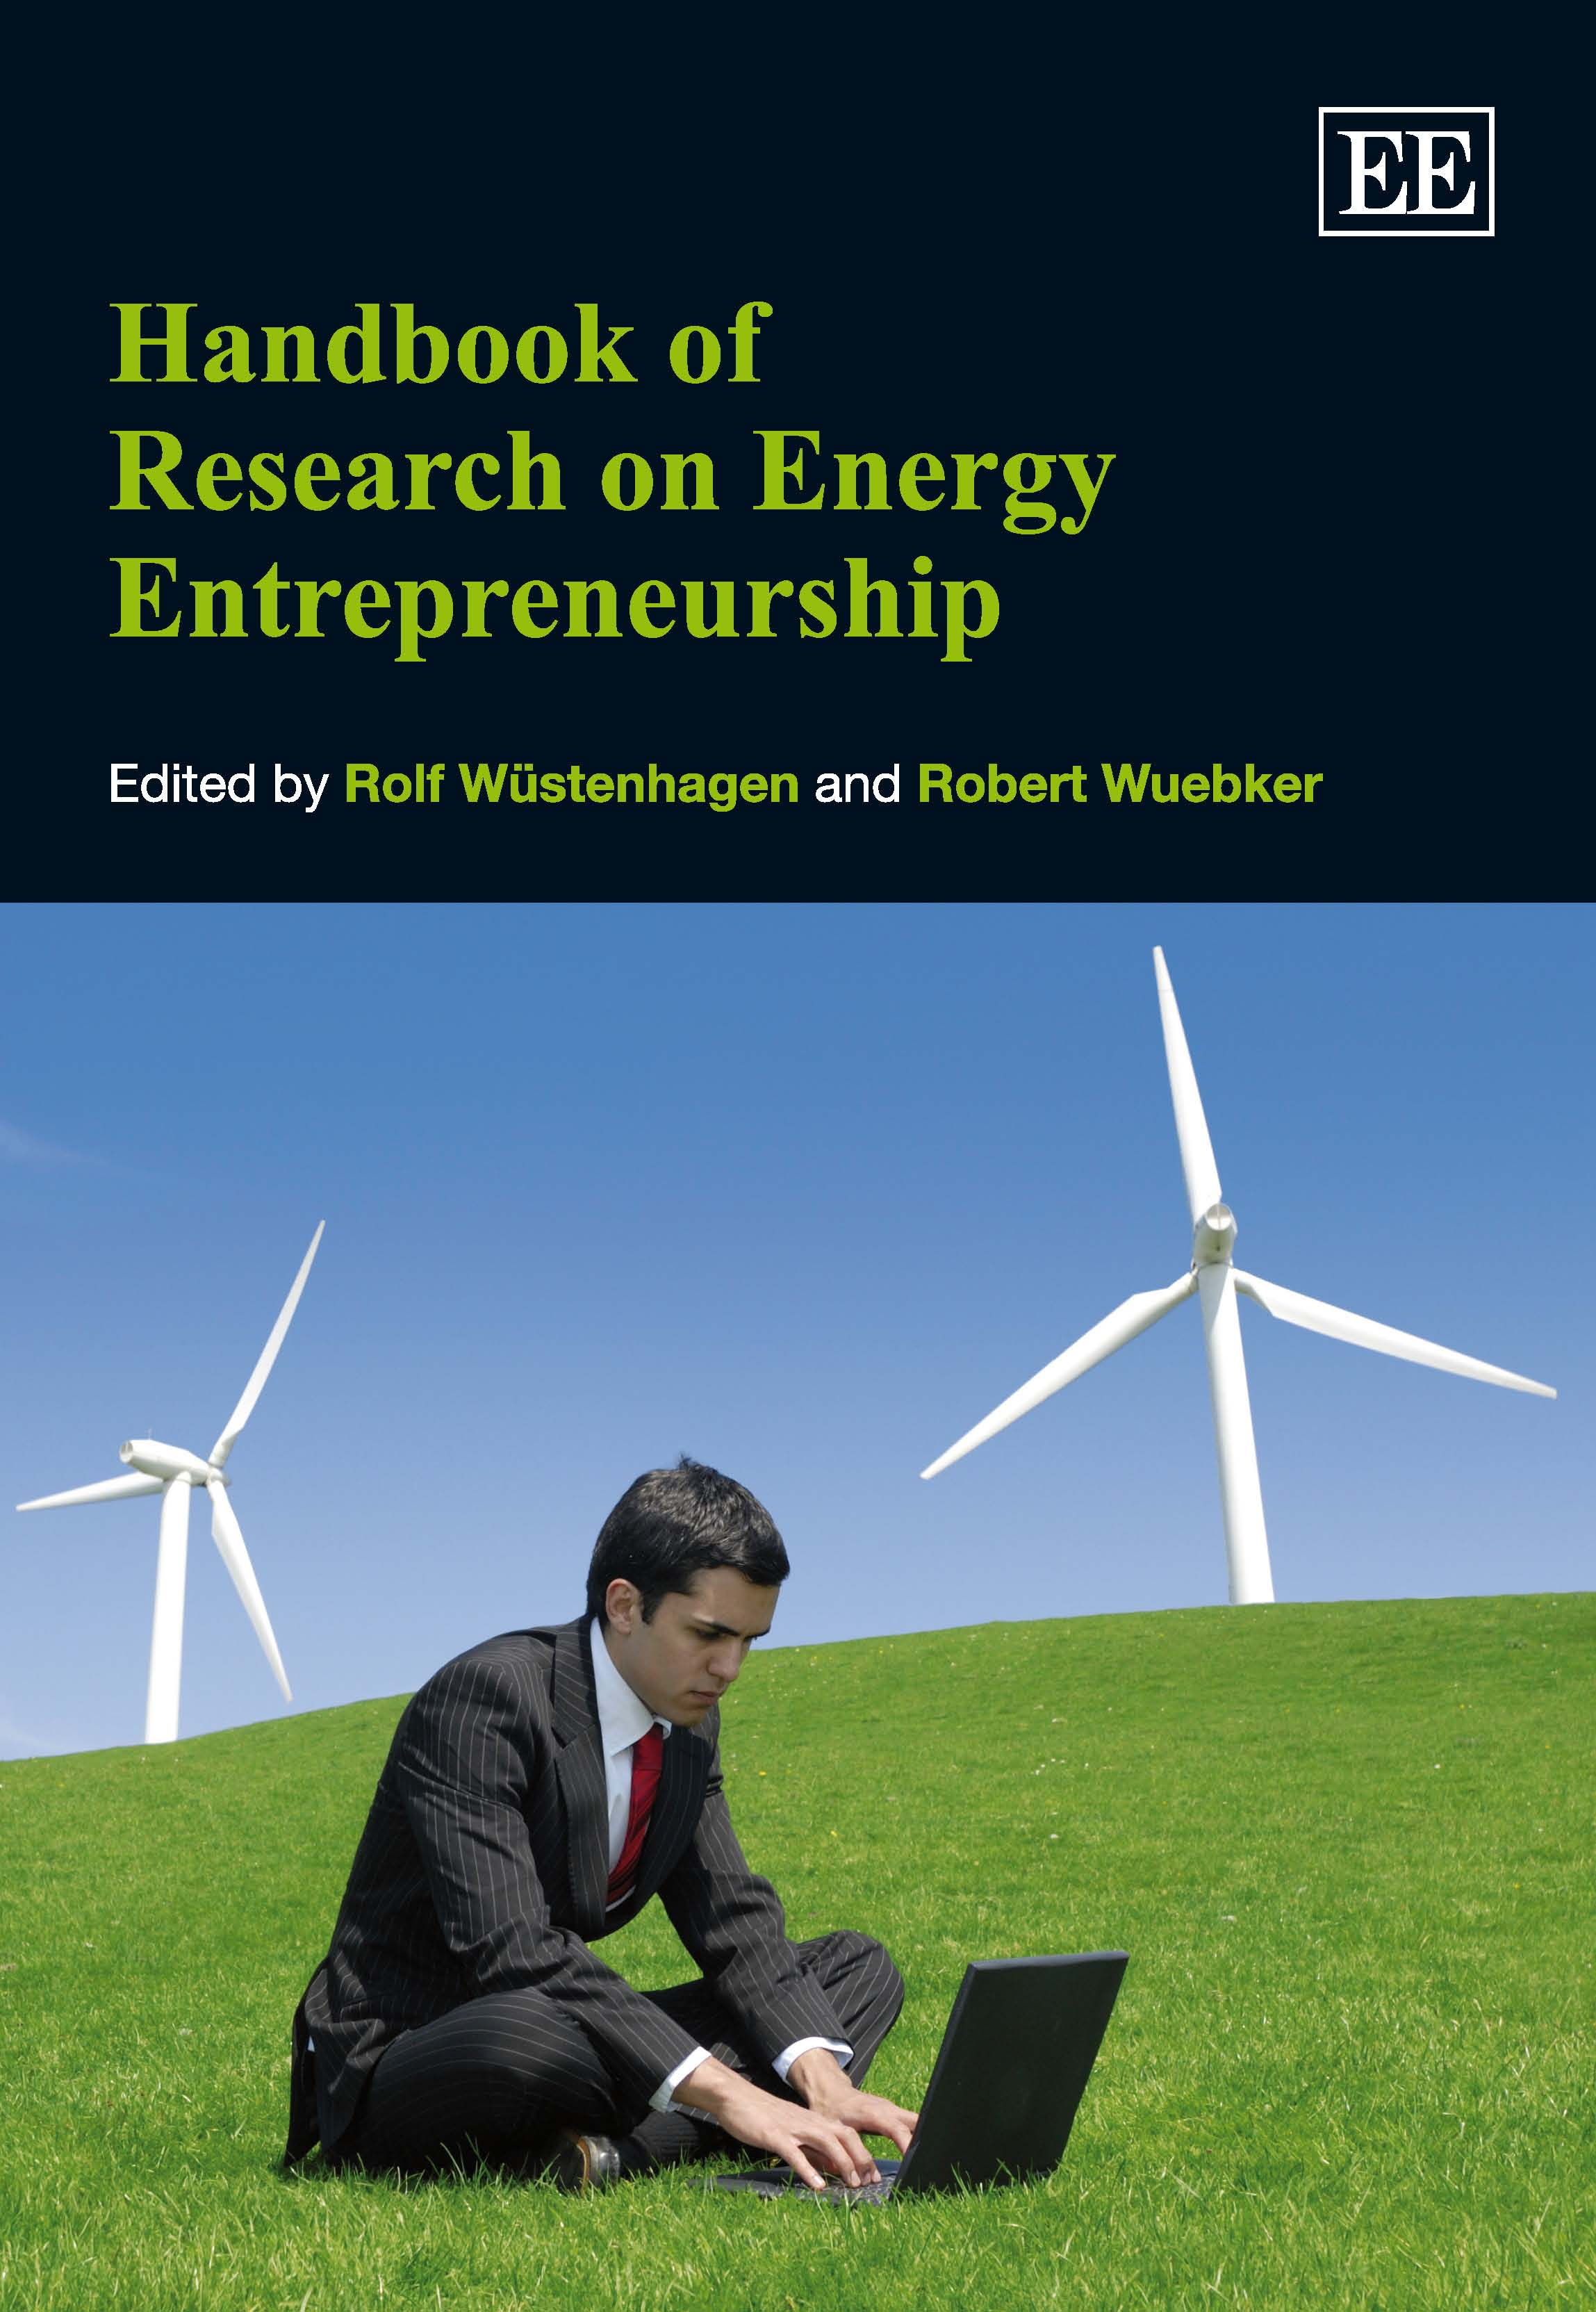 Handbook of Research on Energy Entrepreneurship